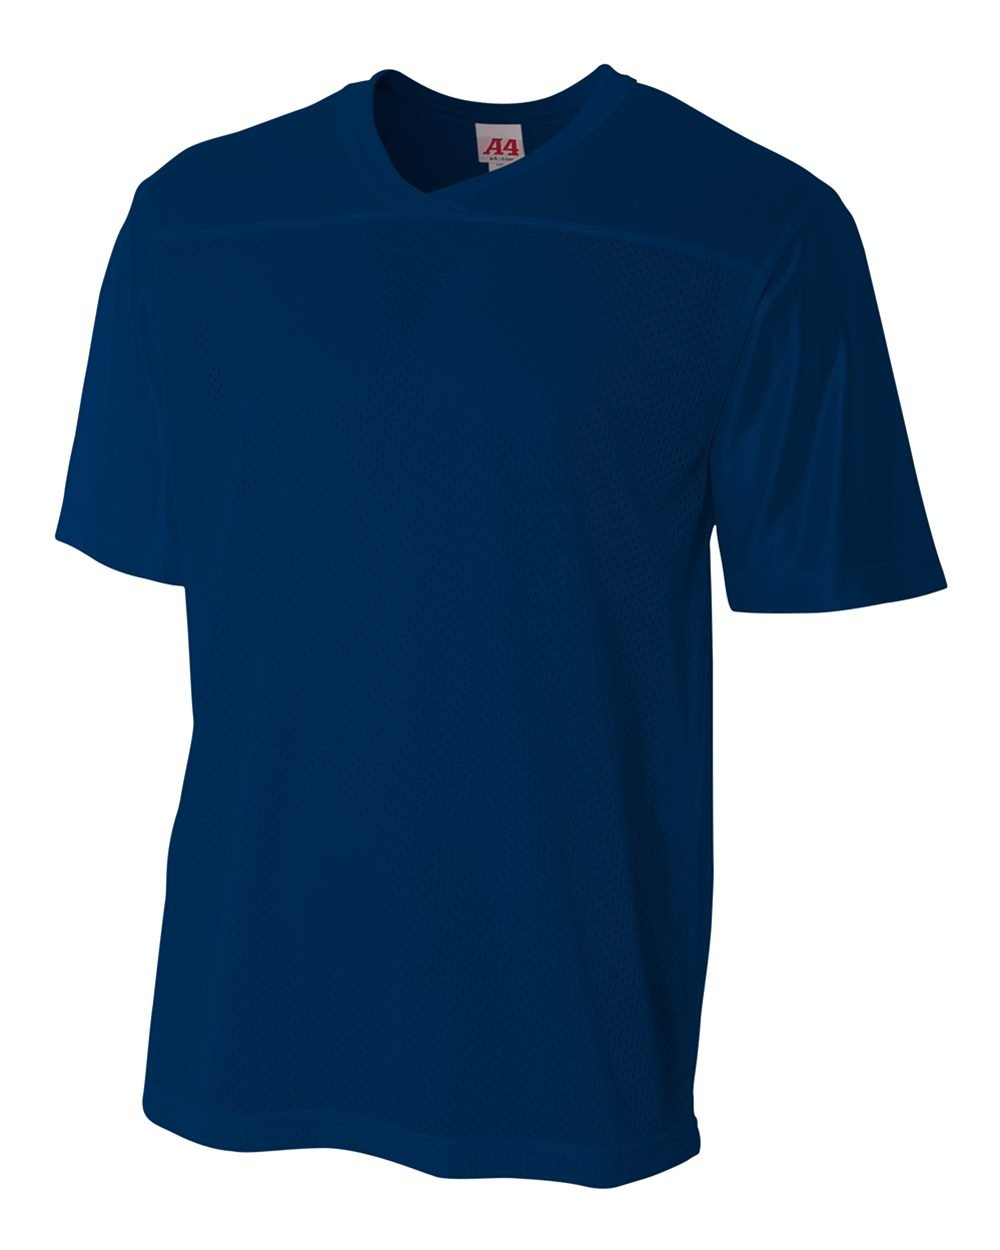 Youth Navy Large (Blank Back) Moisture Wicking V-Neck Football Jersey